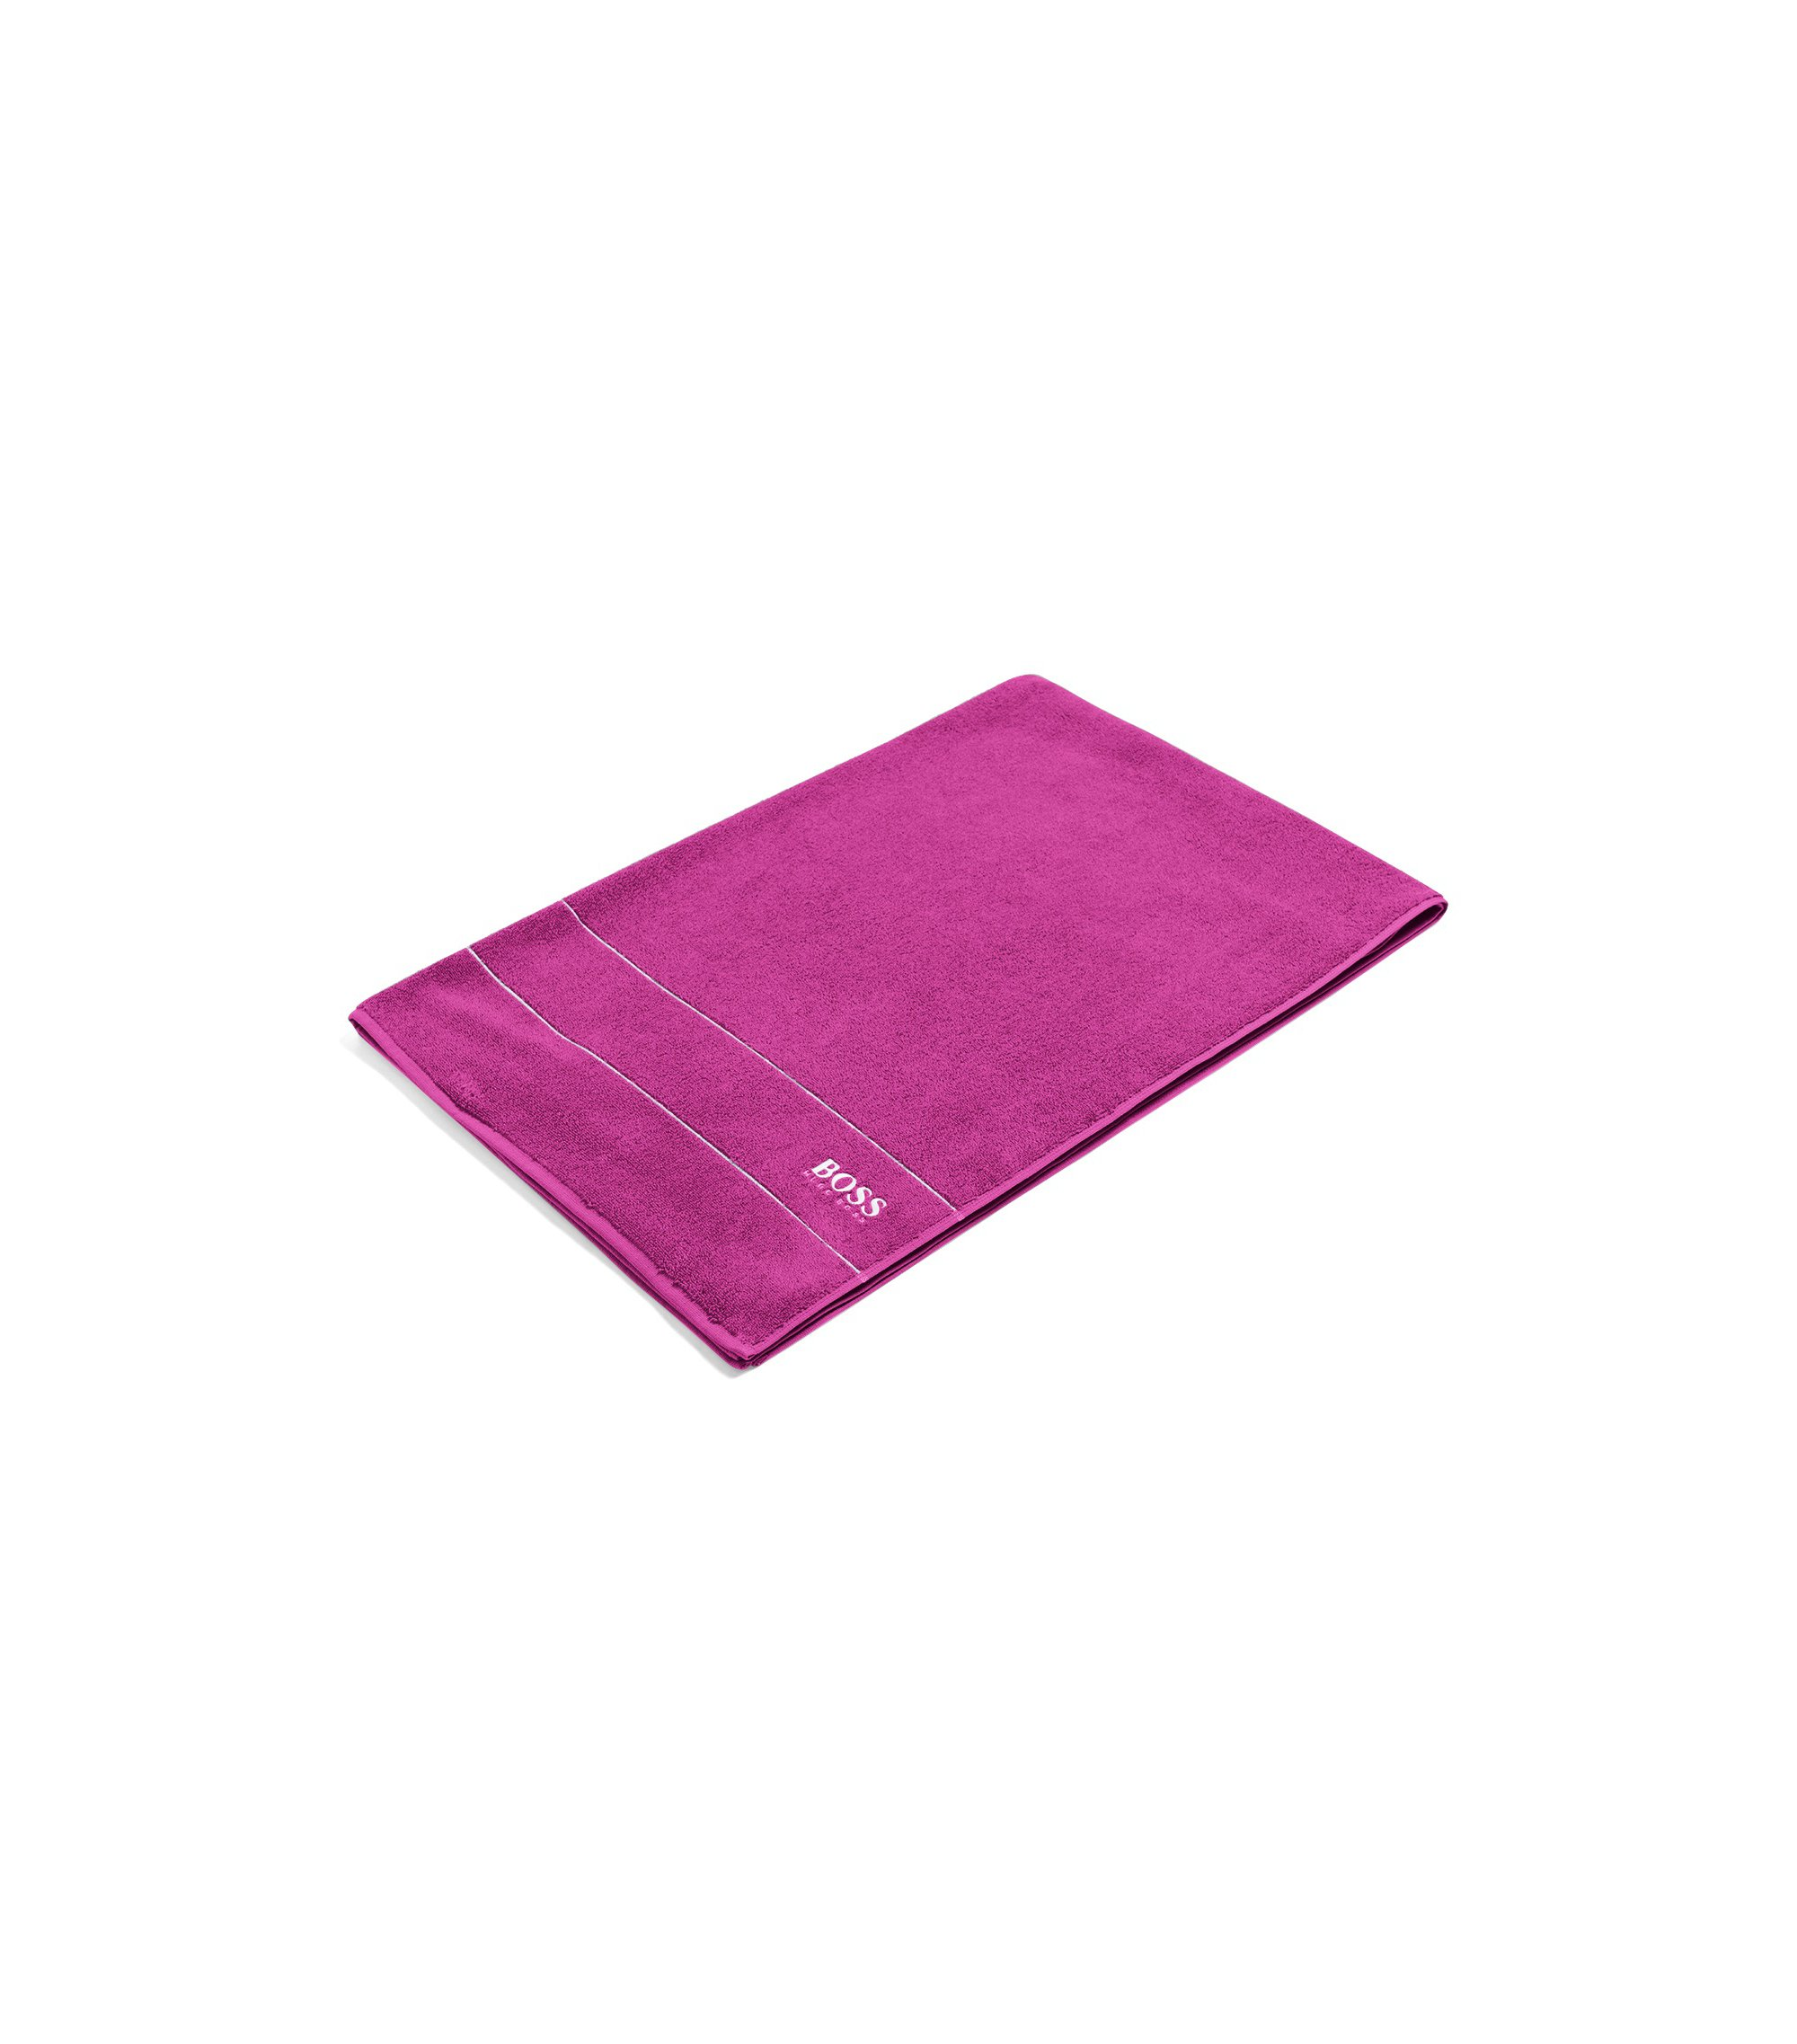 Finest Egyptian cotton bath sheet with logo border, Pink